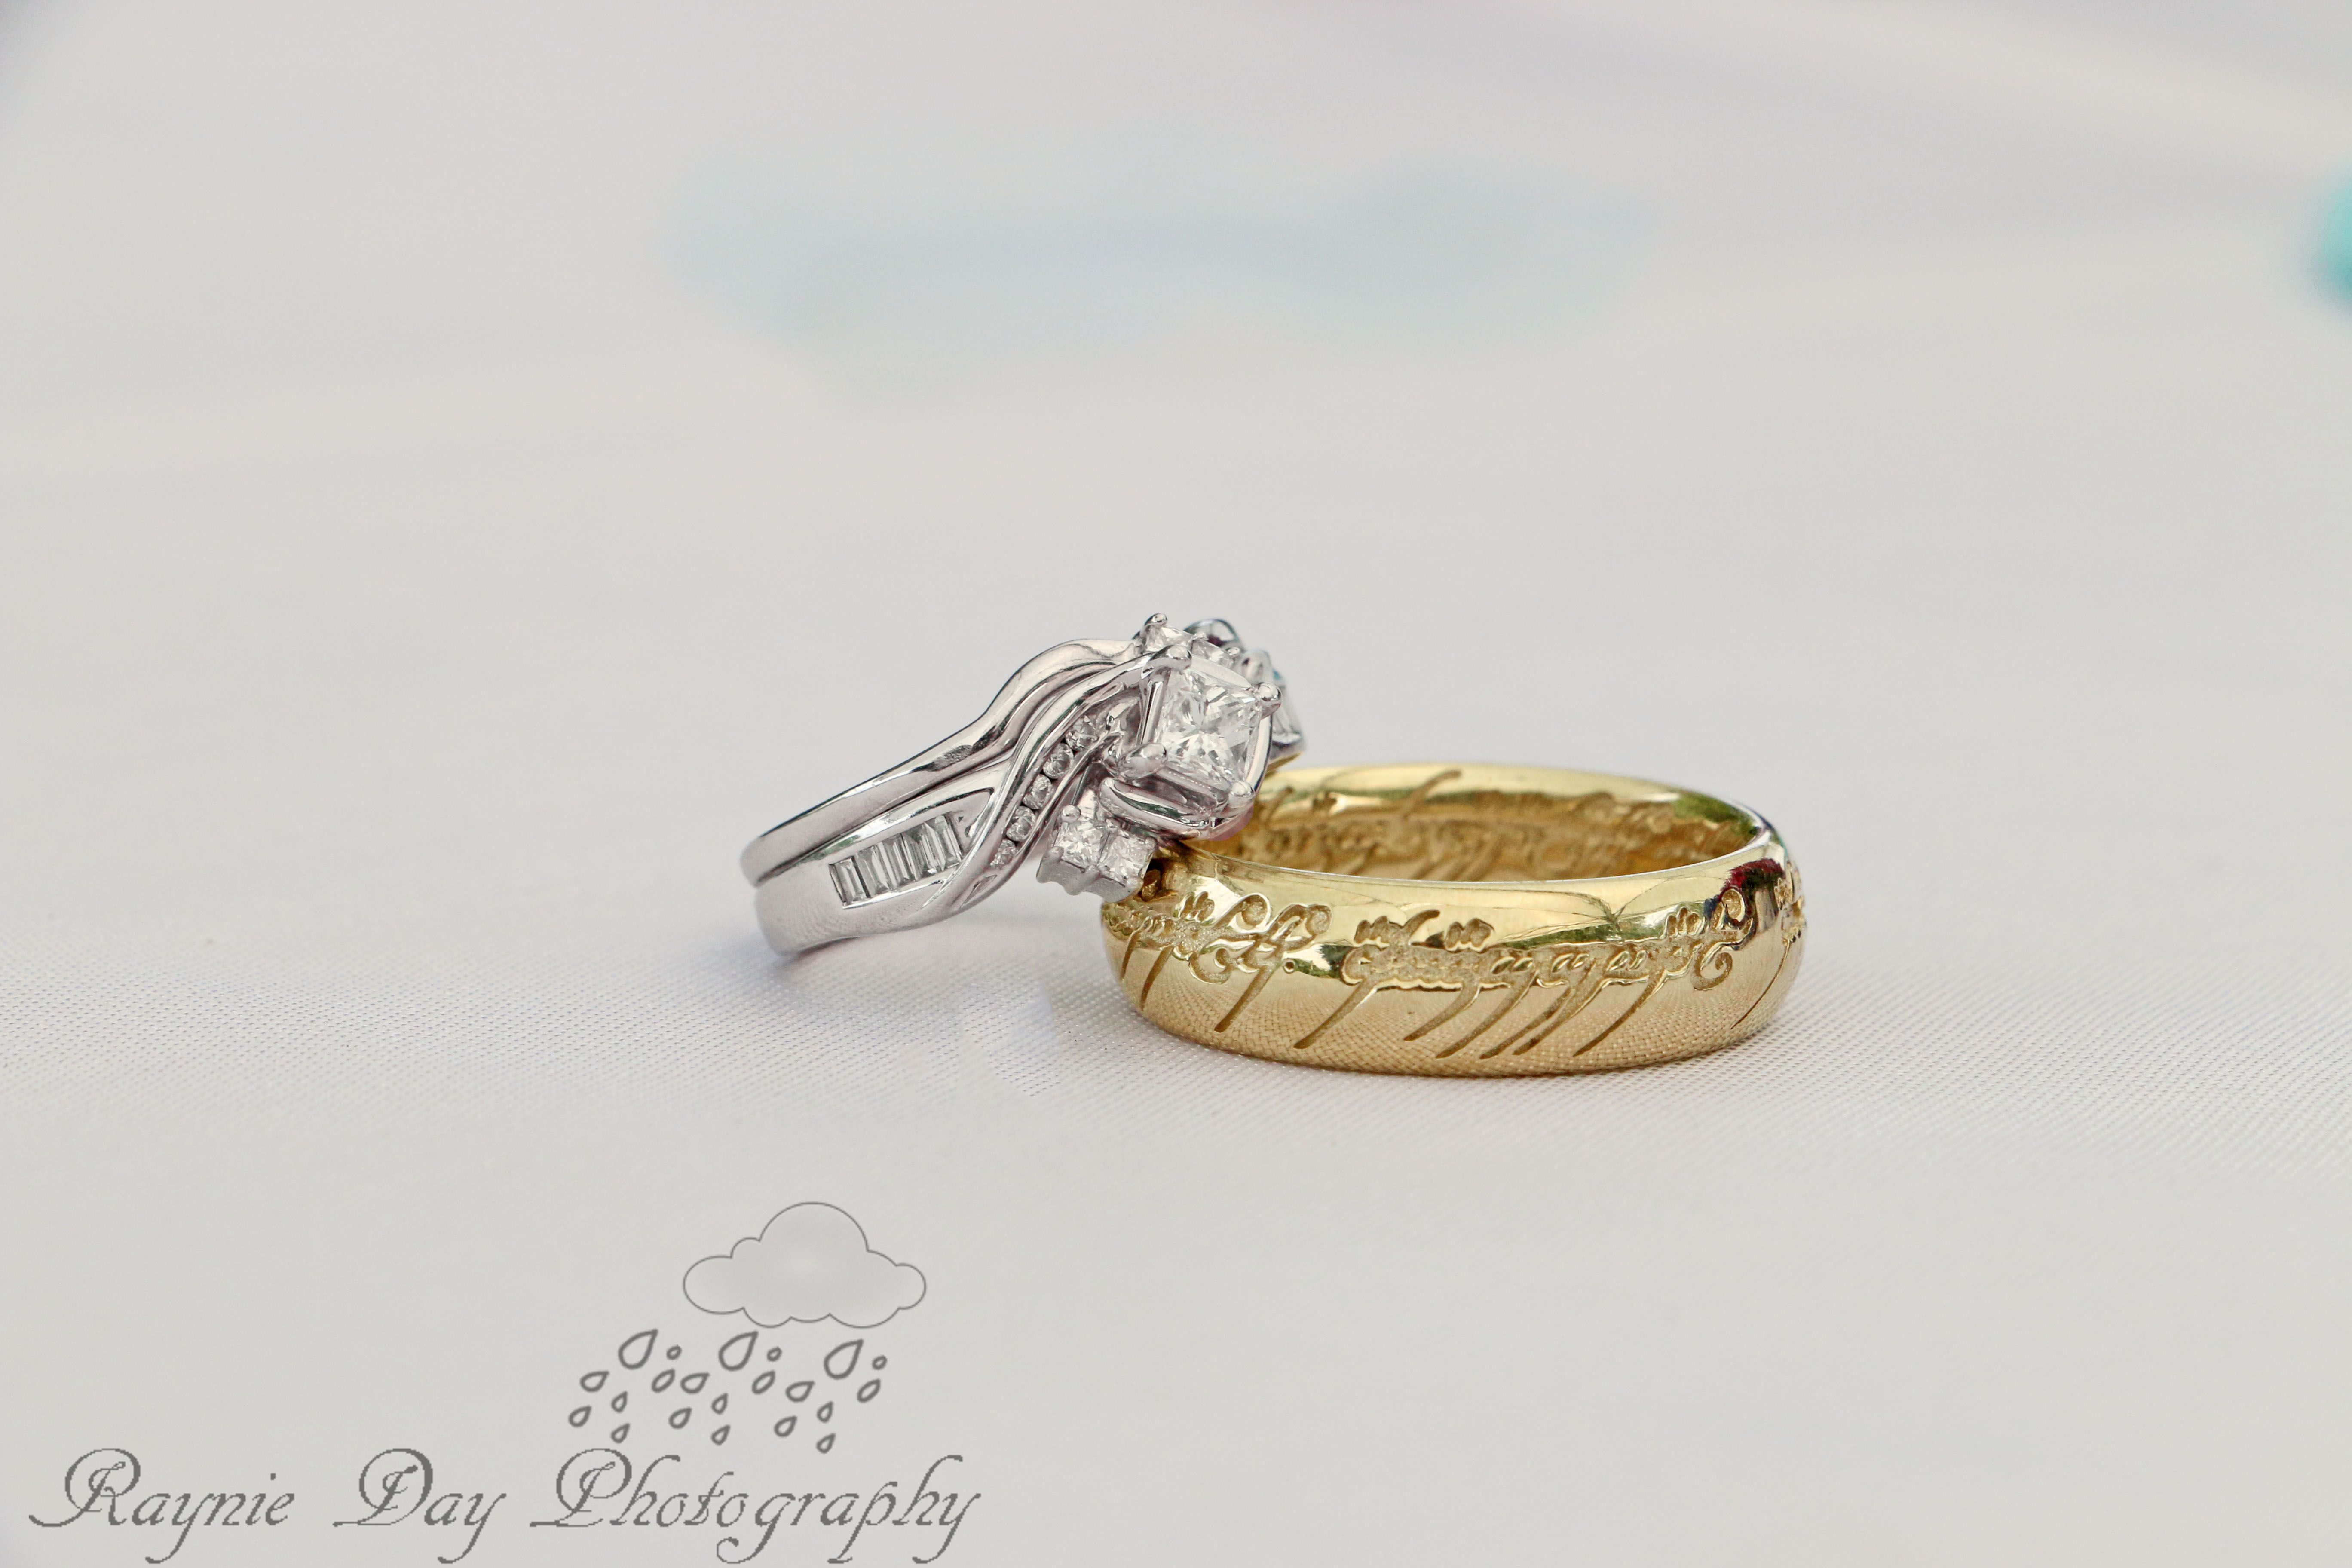 The One Ring Wedding Band Lord Of The Rings Wedding Theme Element Photo By Raynie Day Photography Www Rayniedayphot Wedding Ring Bands One Ring Wedding Rings